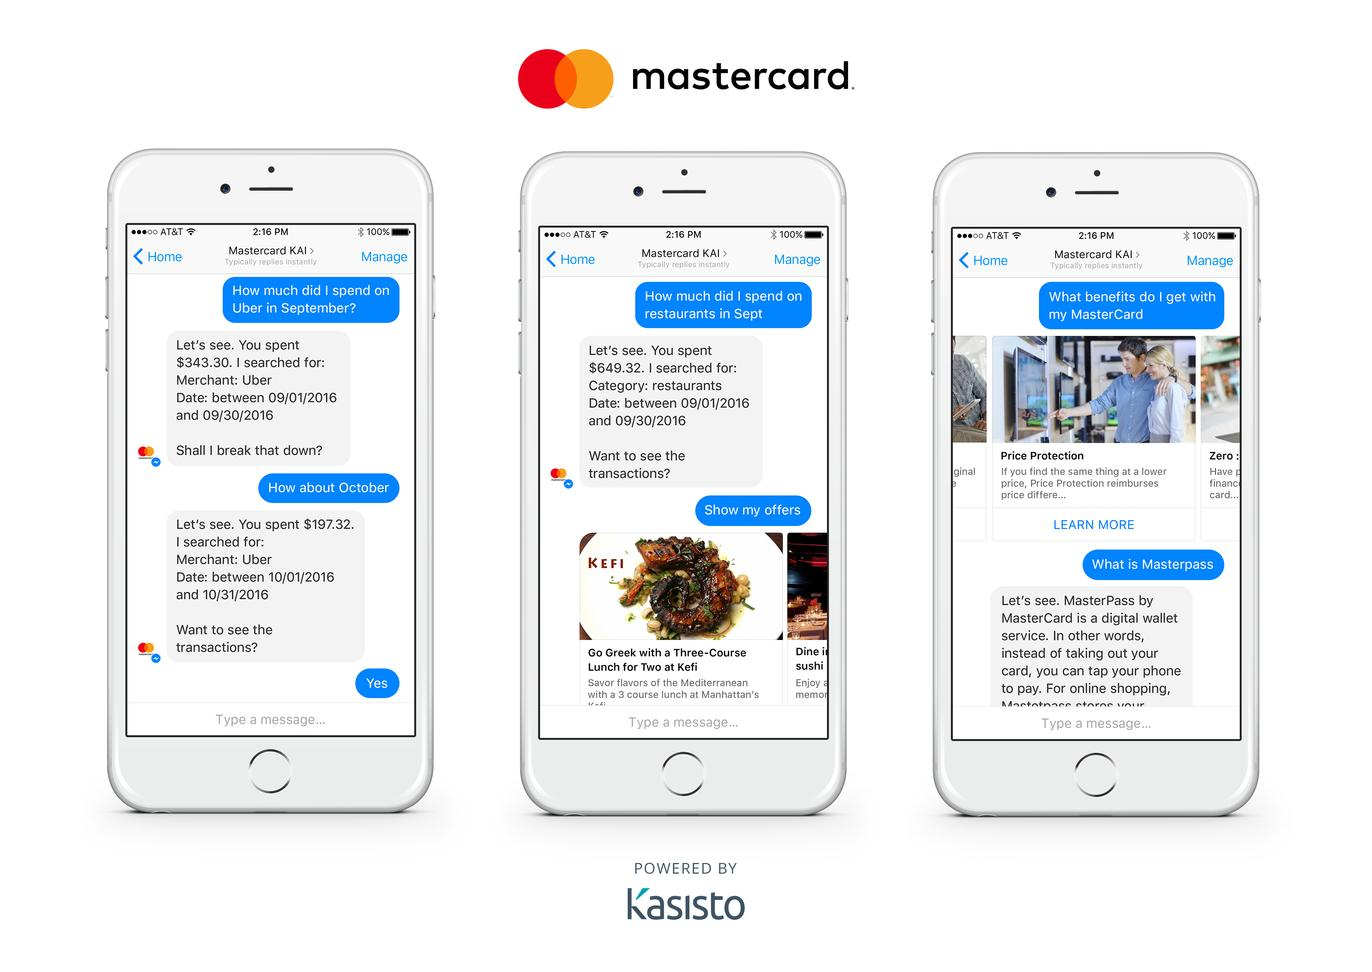 wersm-mastercard-will-soon-allow-customers-manage-accounts-messenger-img